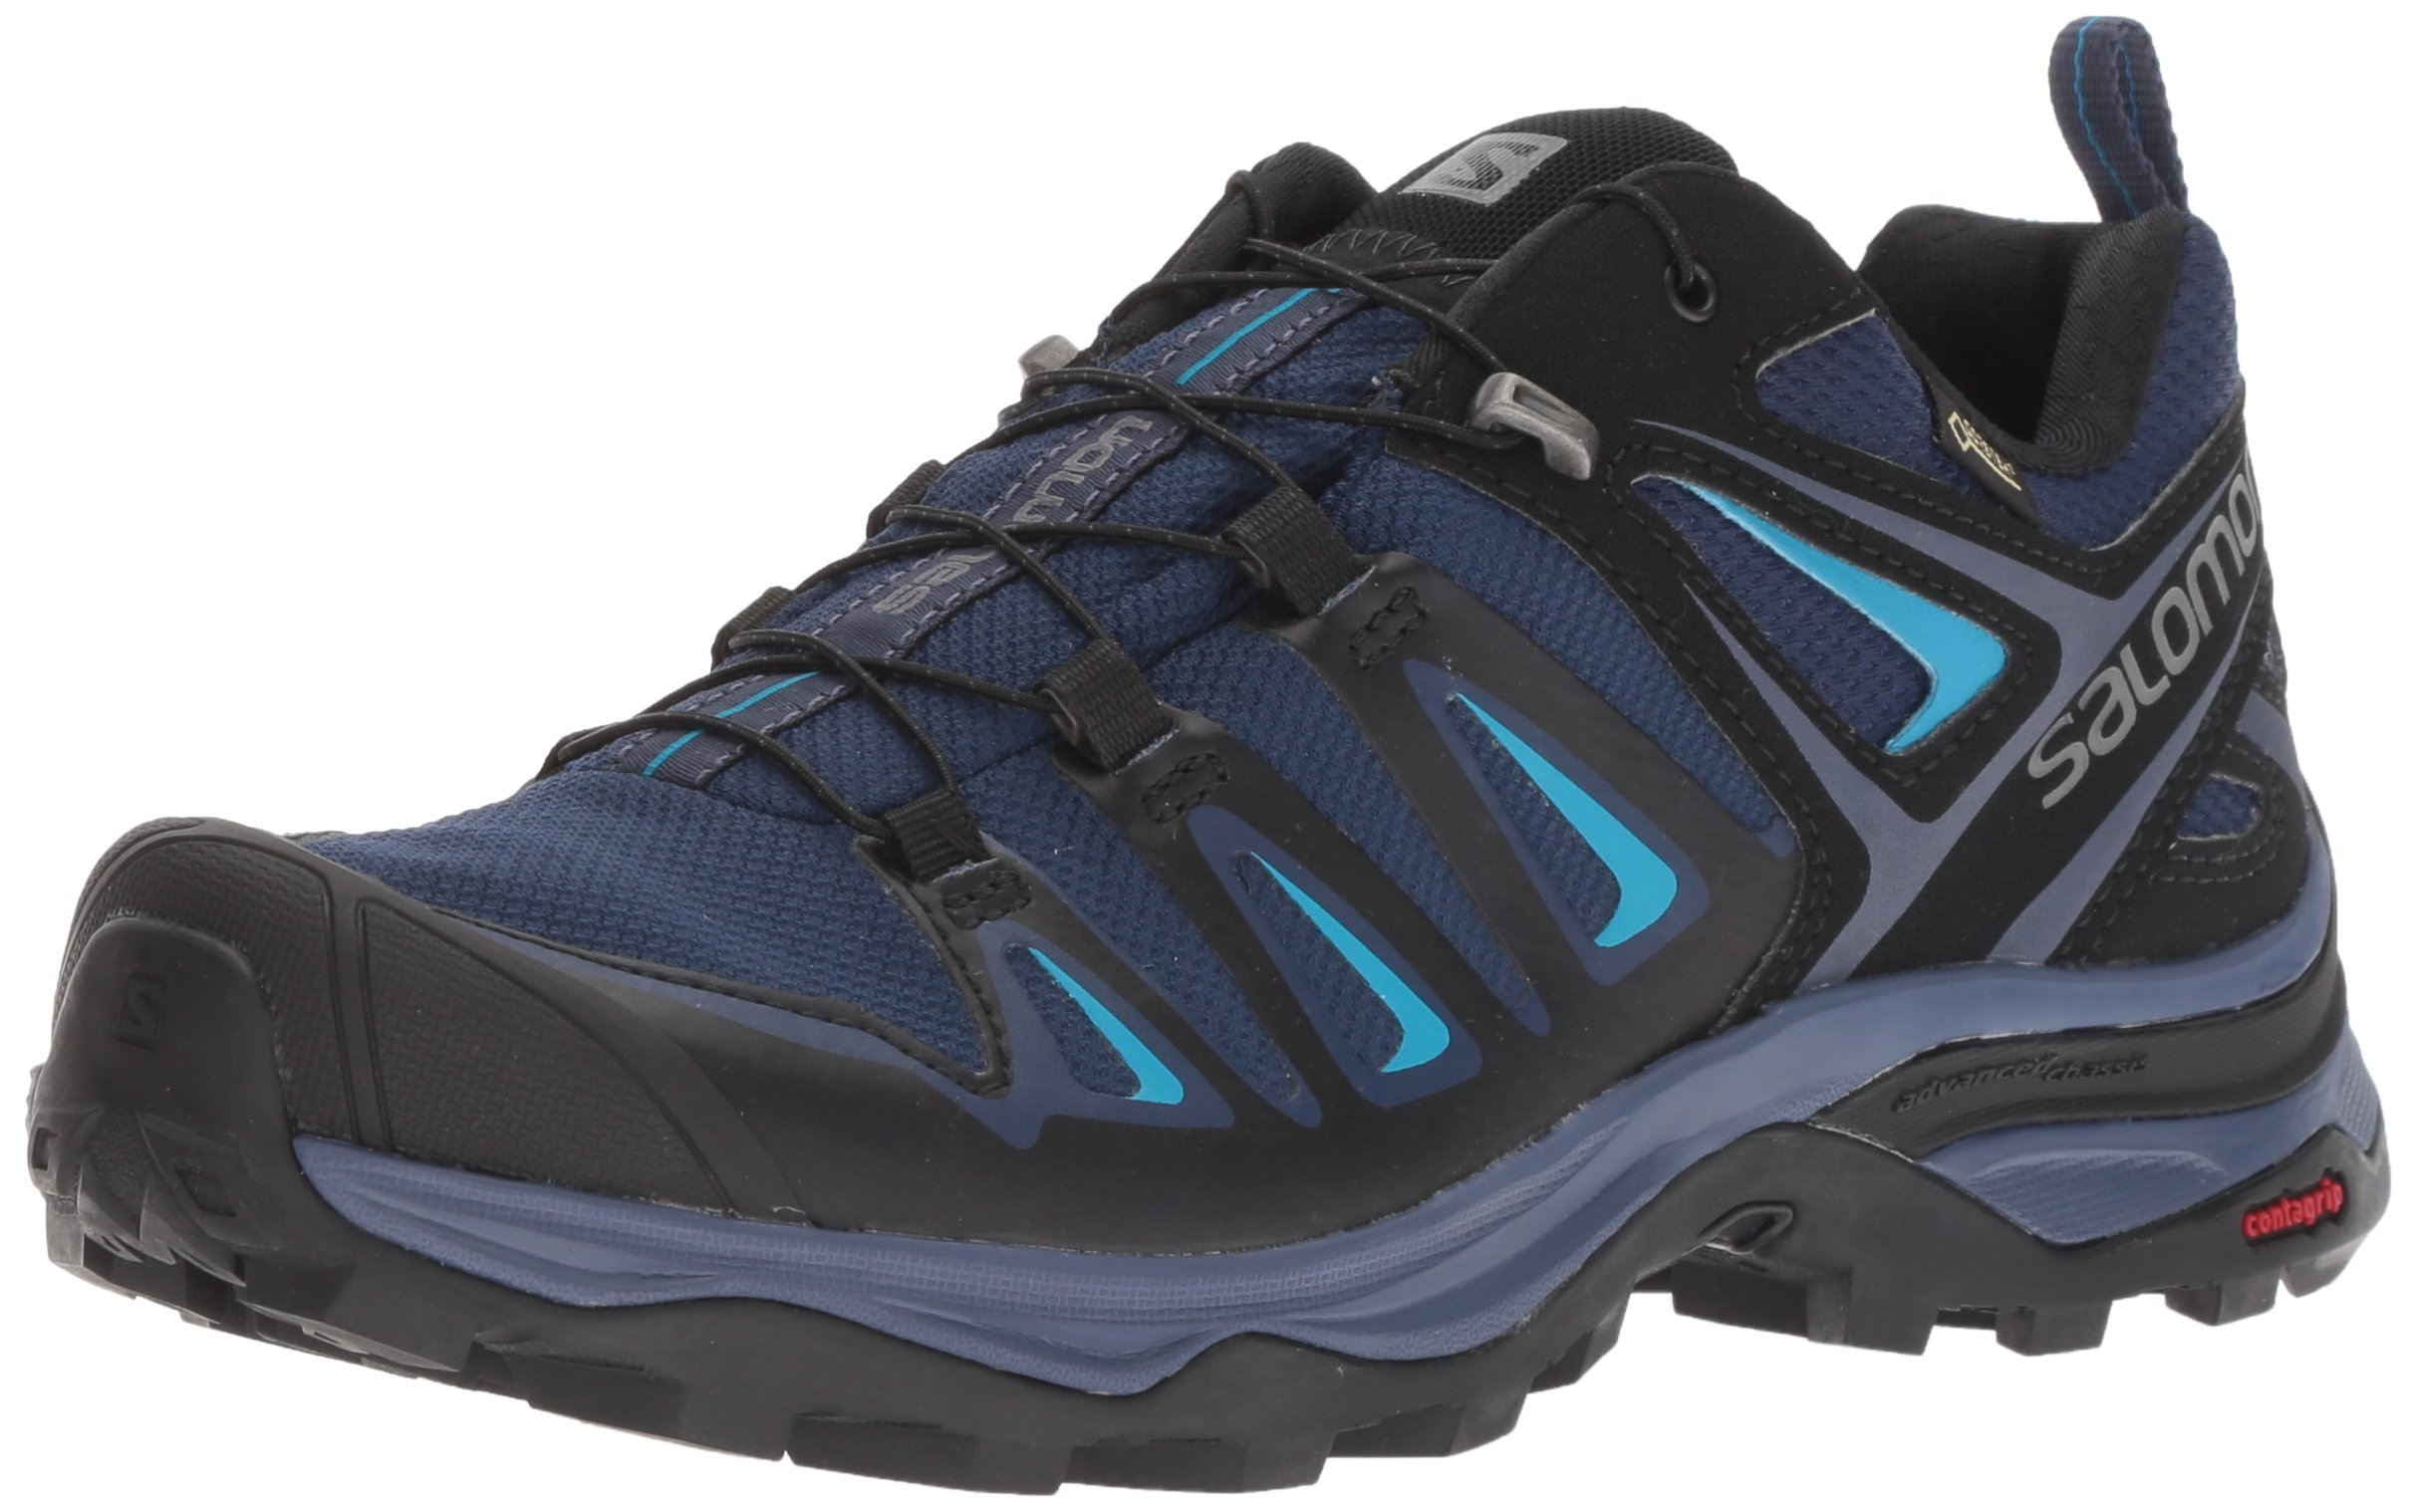 Salomon Women's X Ultra 3 GTX Trail Running Shoe, Medieval Blue/Black/Hawaiian surf, 5.5 B US by Salomon (Image #1)